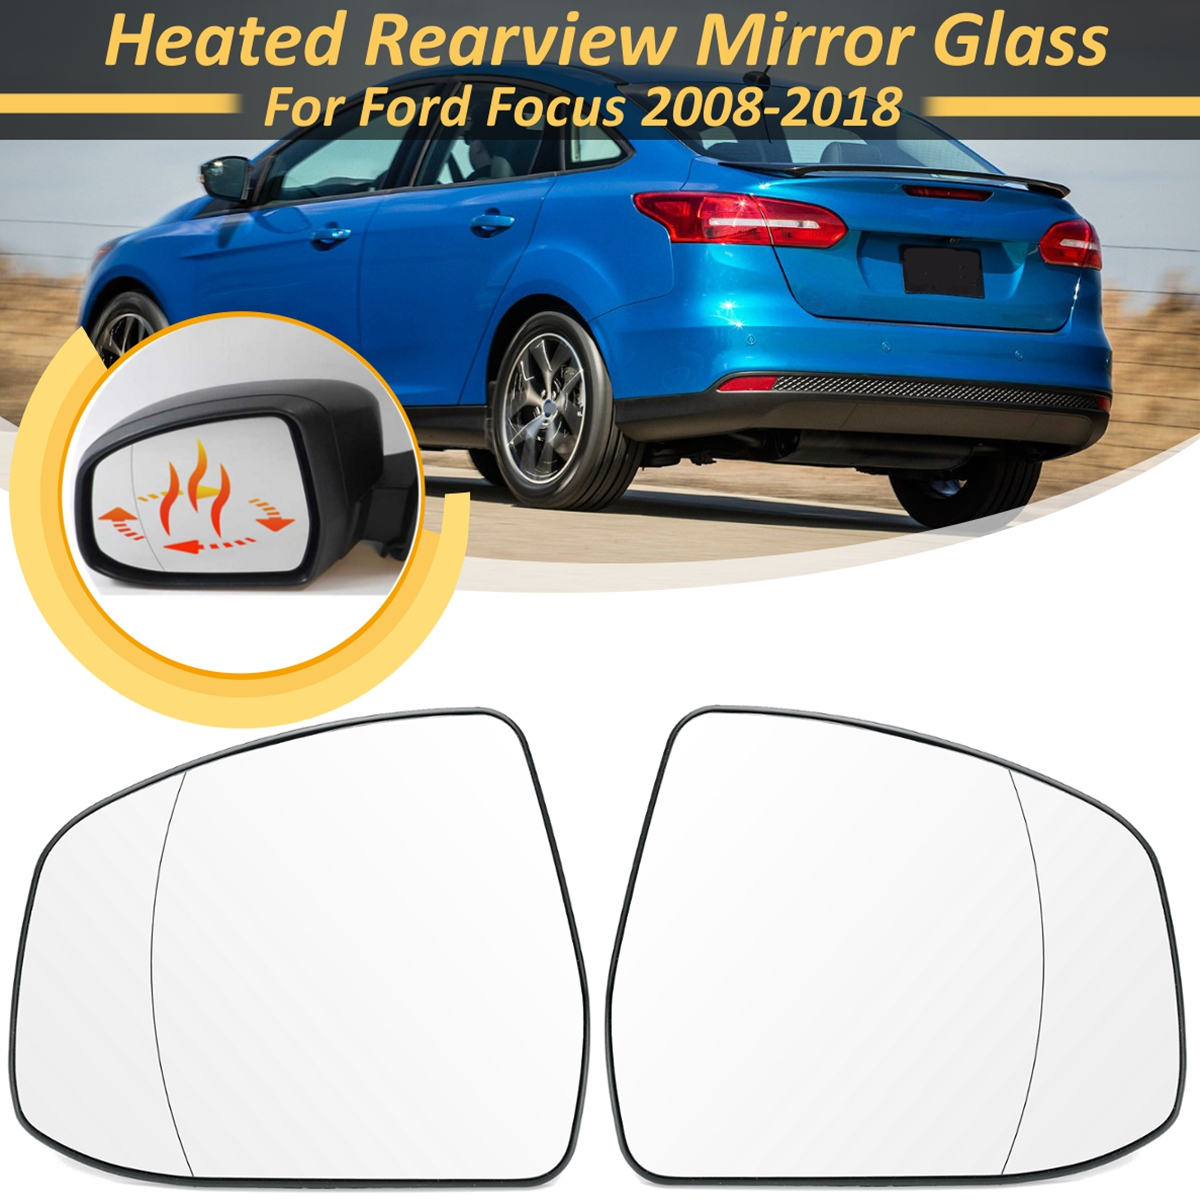 1 Pair Front Door <font><b>Side</b></font> Wing Heated Rearview Warming <font><b>Mirror</b></font> Glass Lens Replacement For <font><b>Ford</b></font> for <font><b>Focus</b></font> 2008 2009 10 11-2018 RHD image